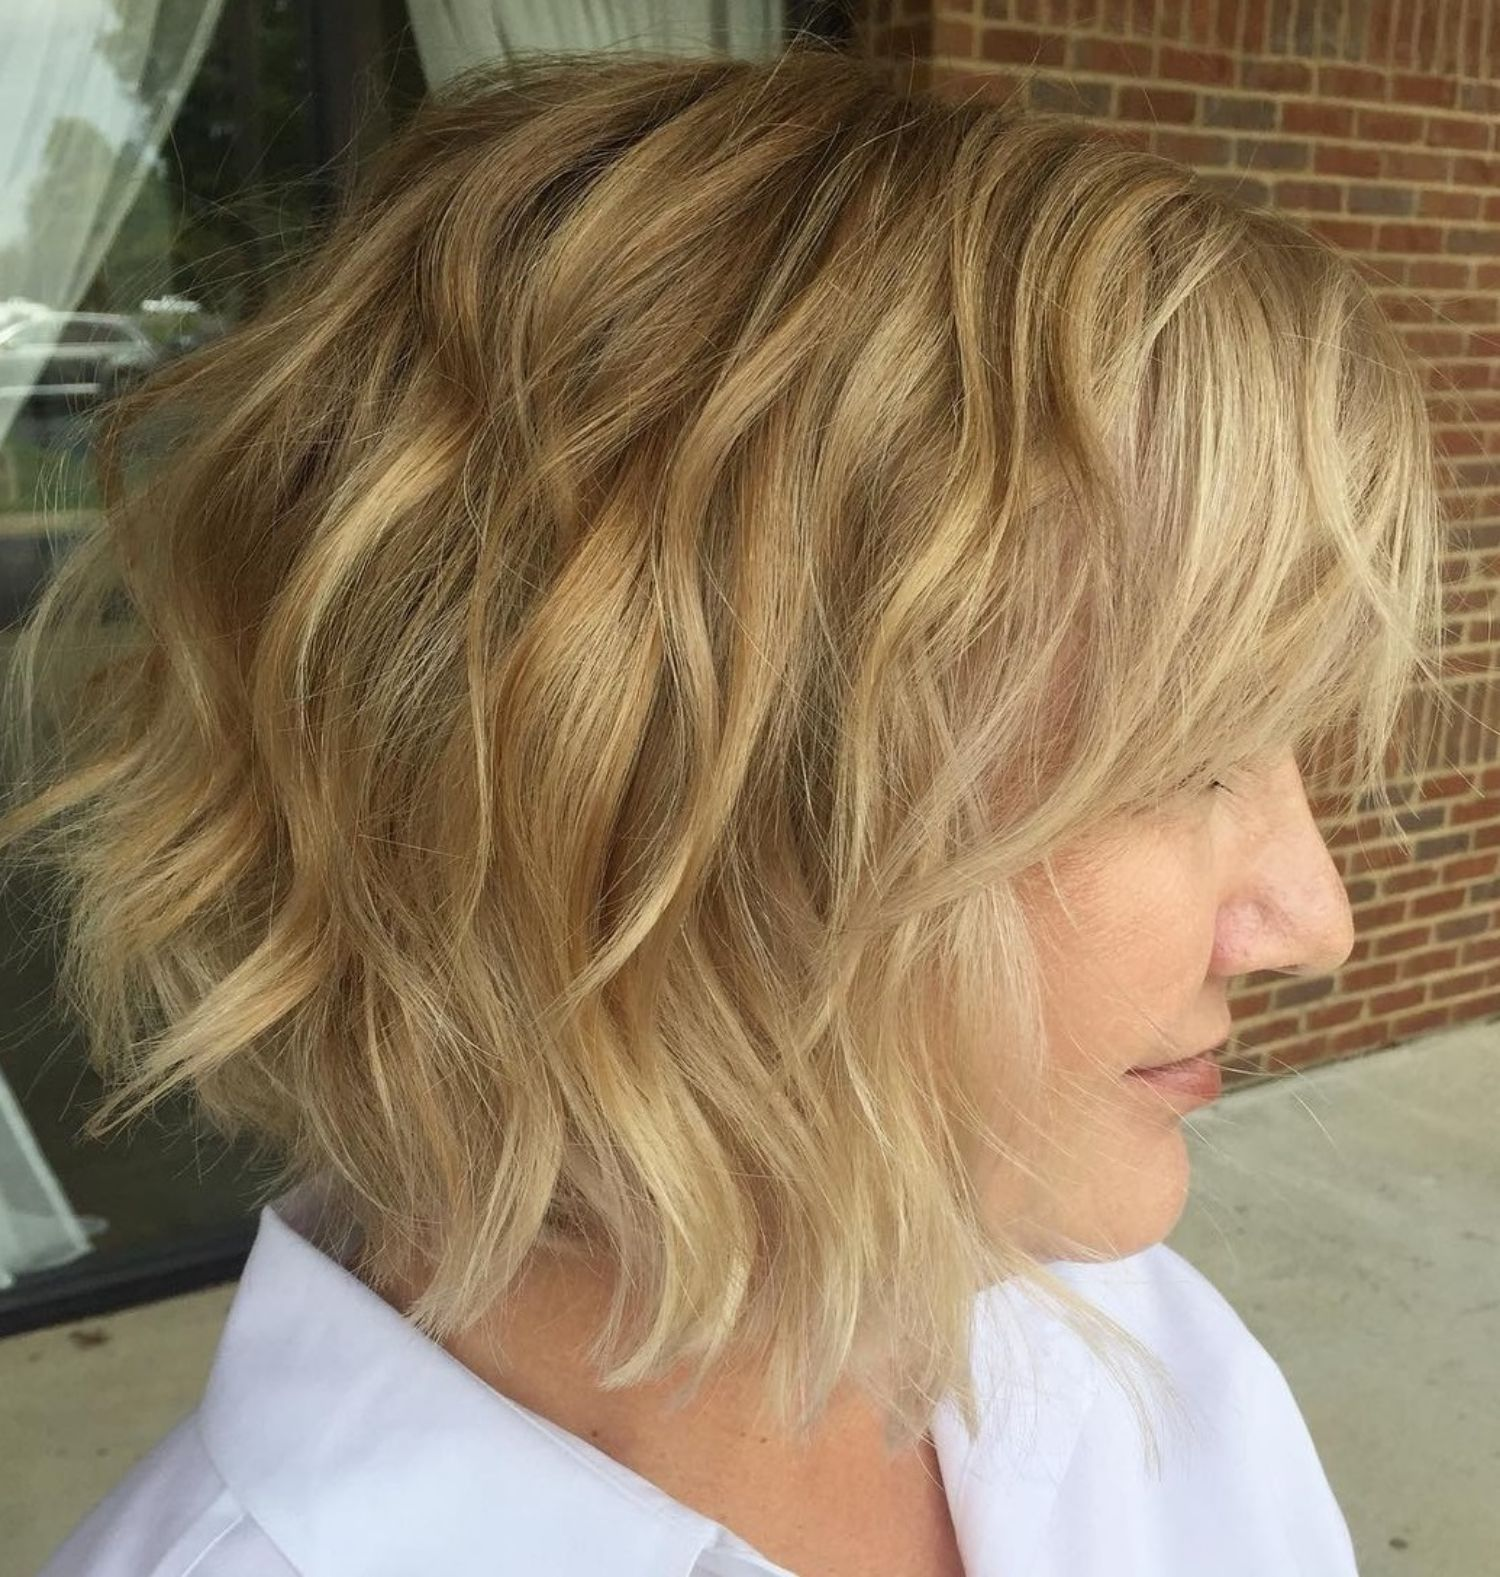 Hairstyles For Medium Wavy Hair Over 50 2021